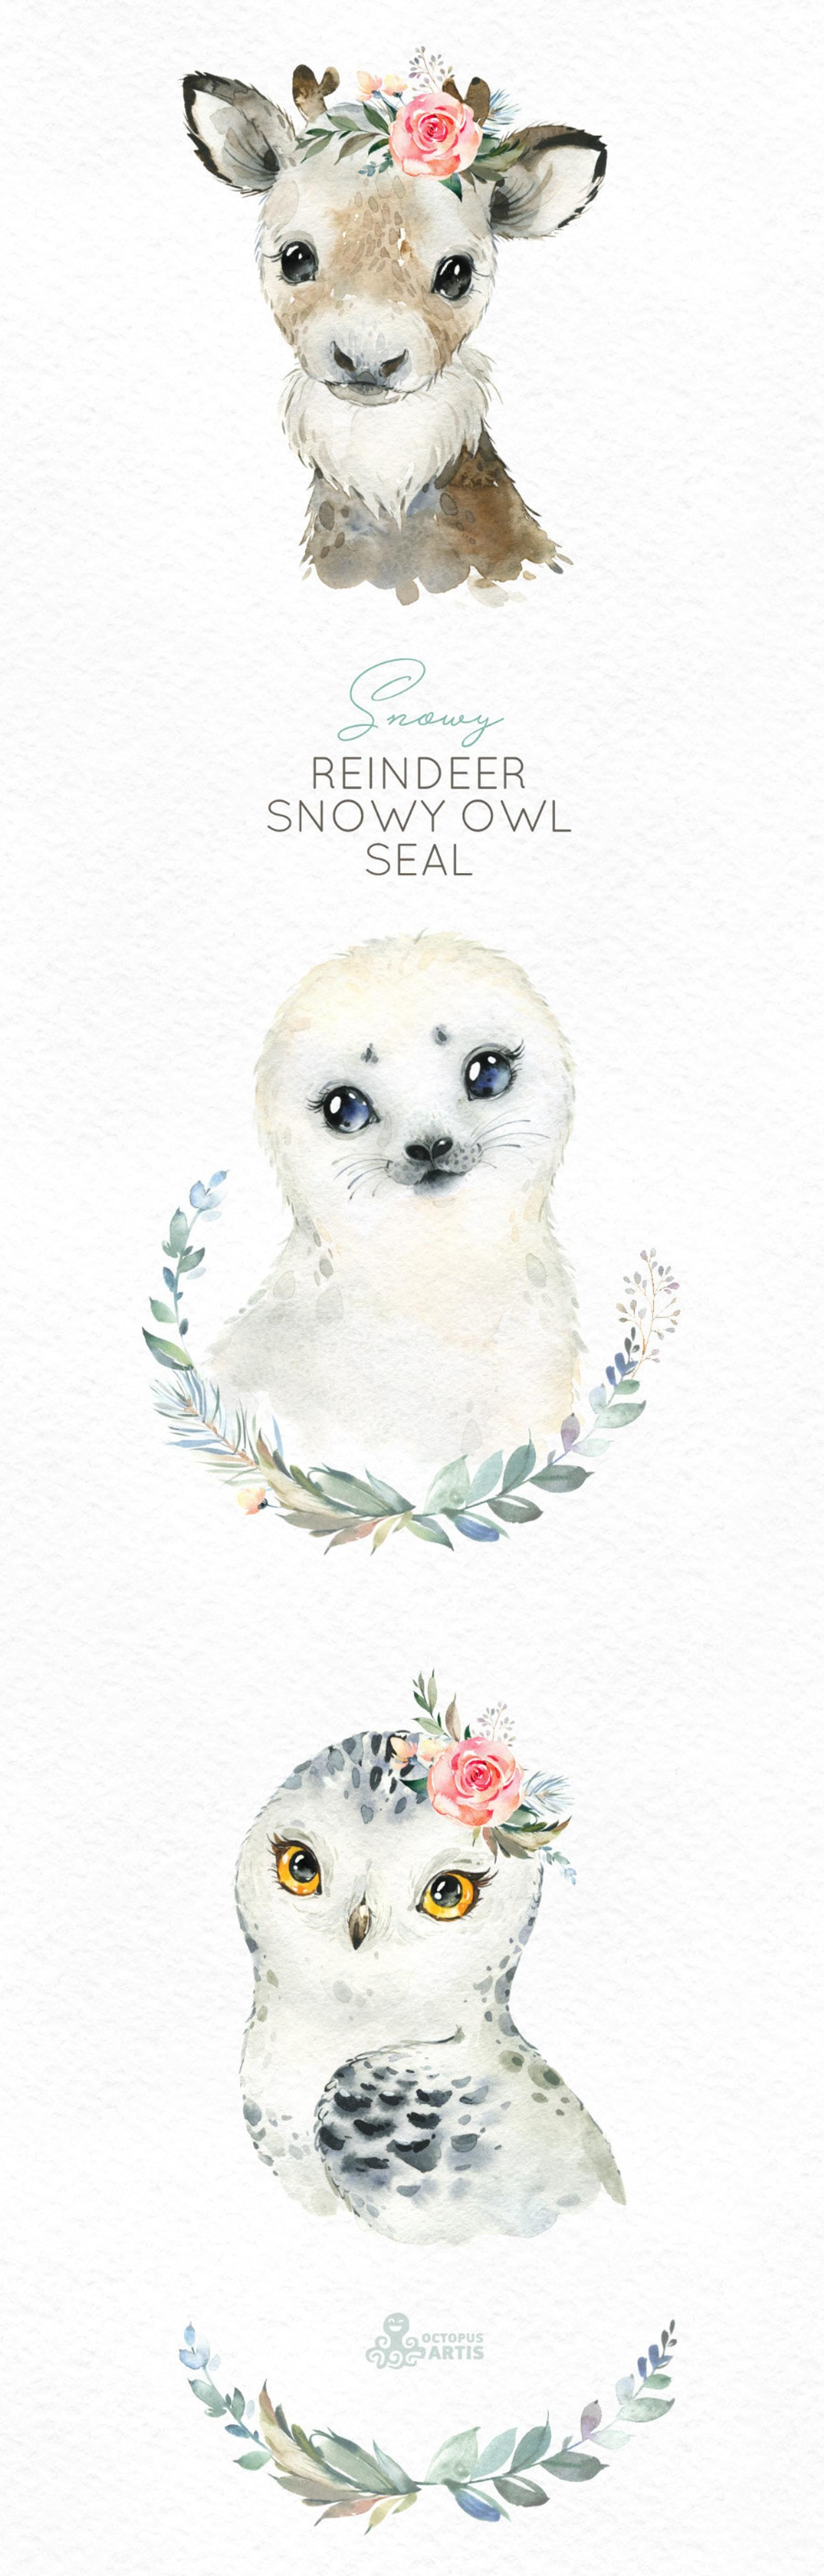 Snowy Reindeer White Owl Seal Watercolor little animals